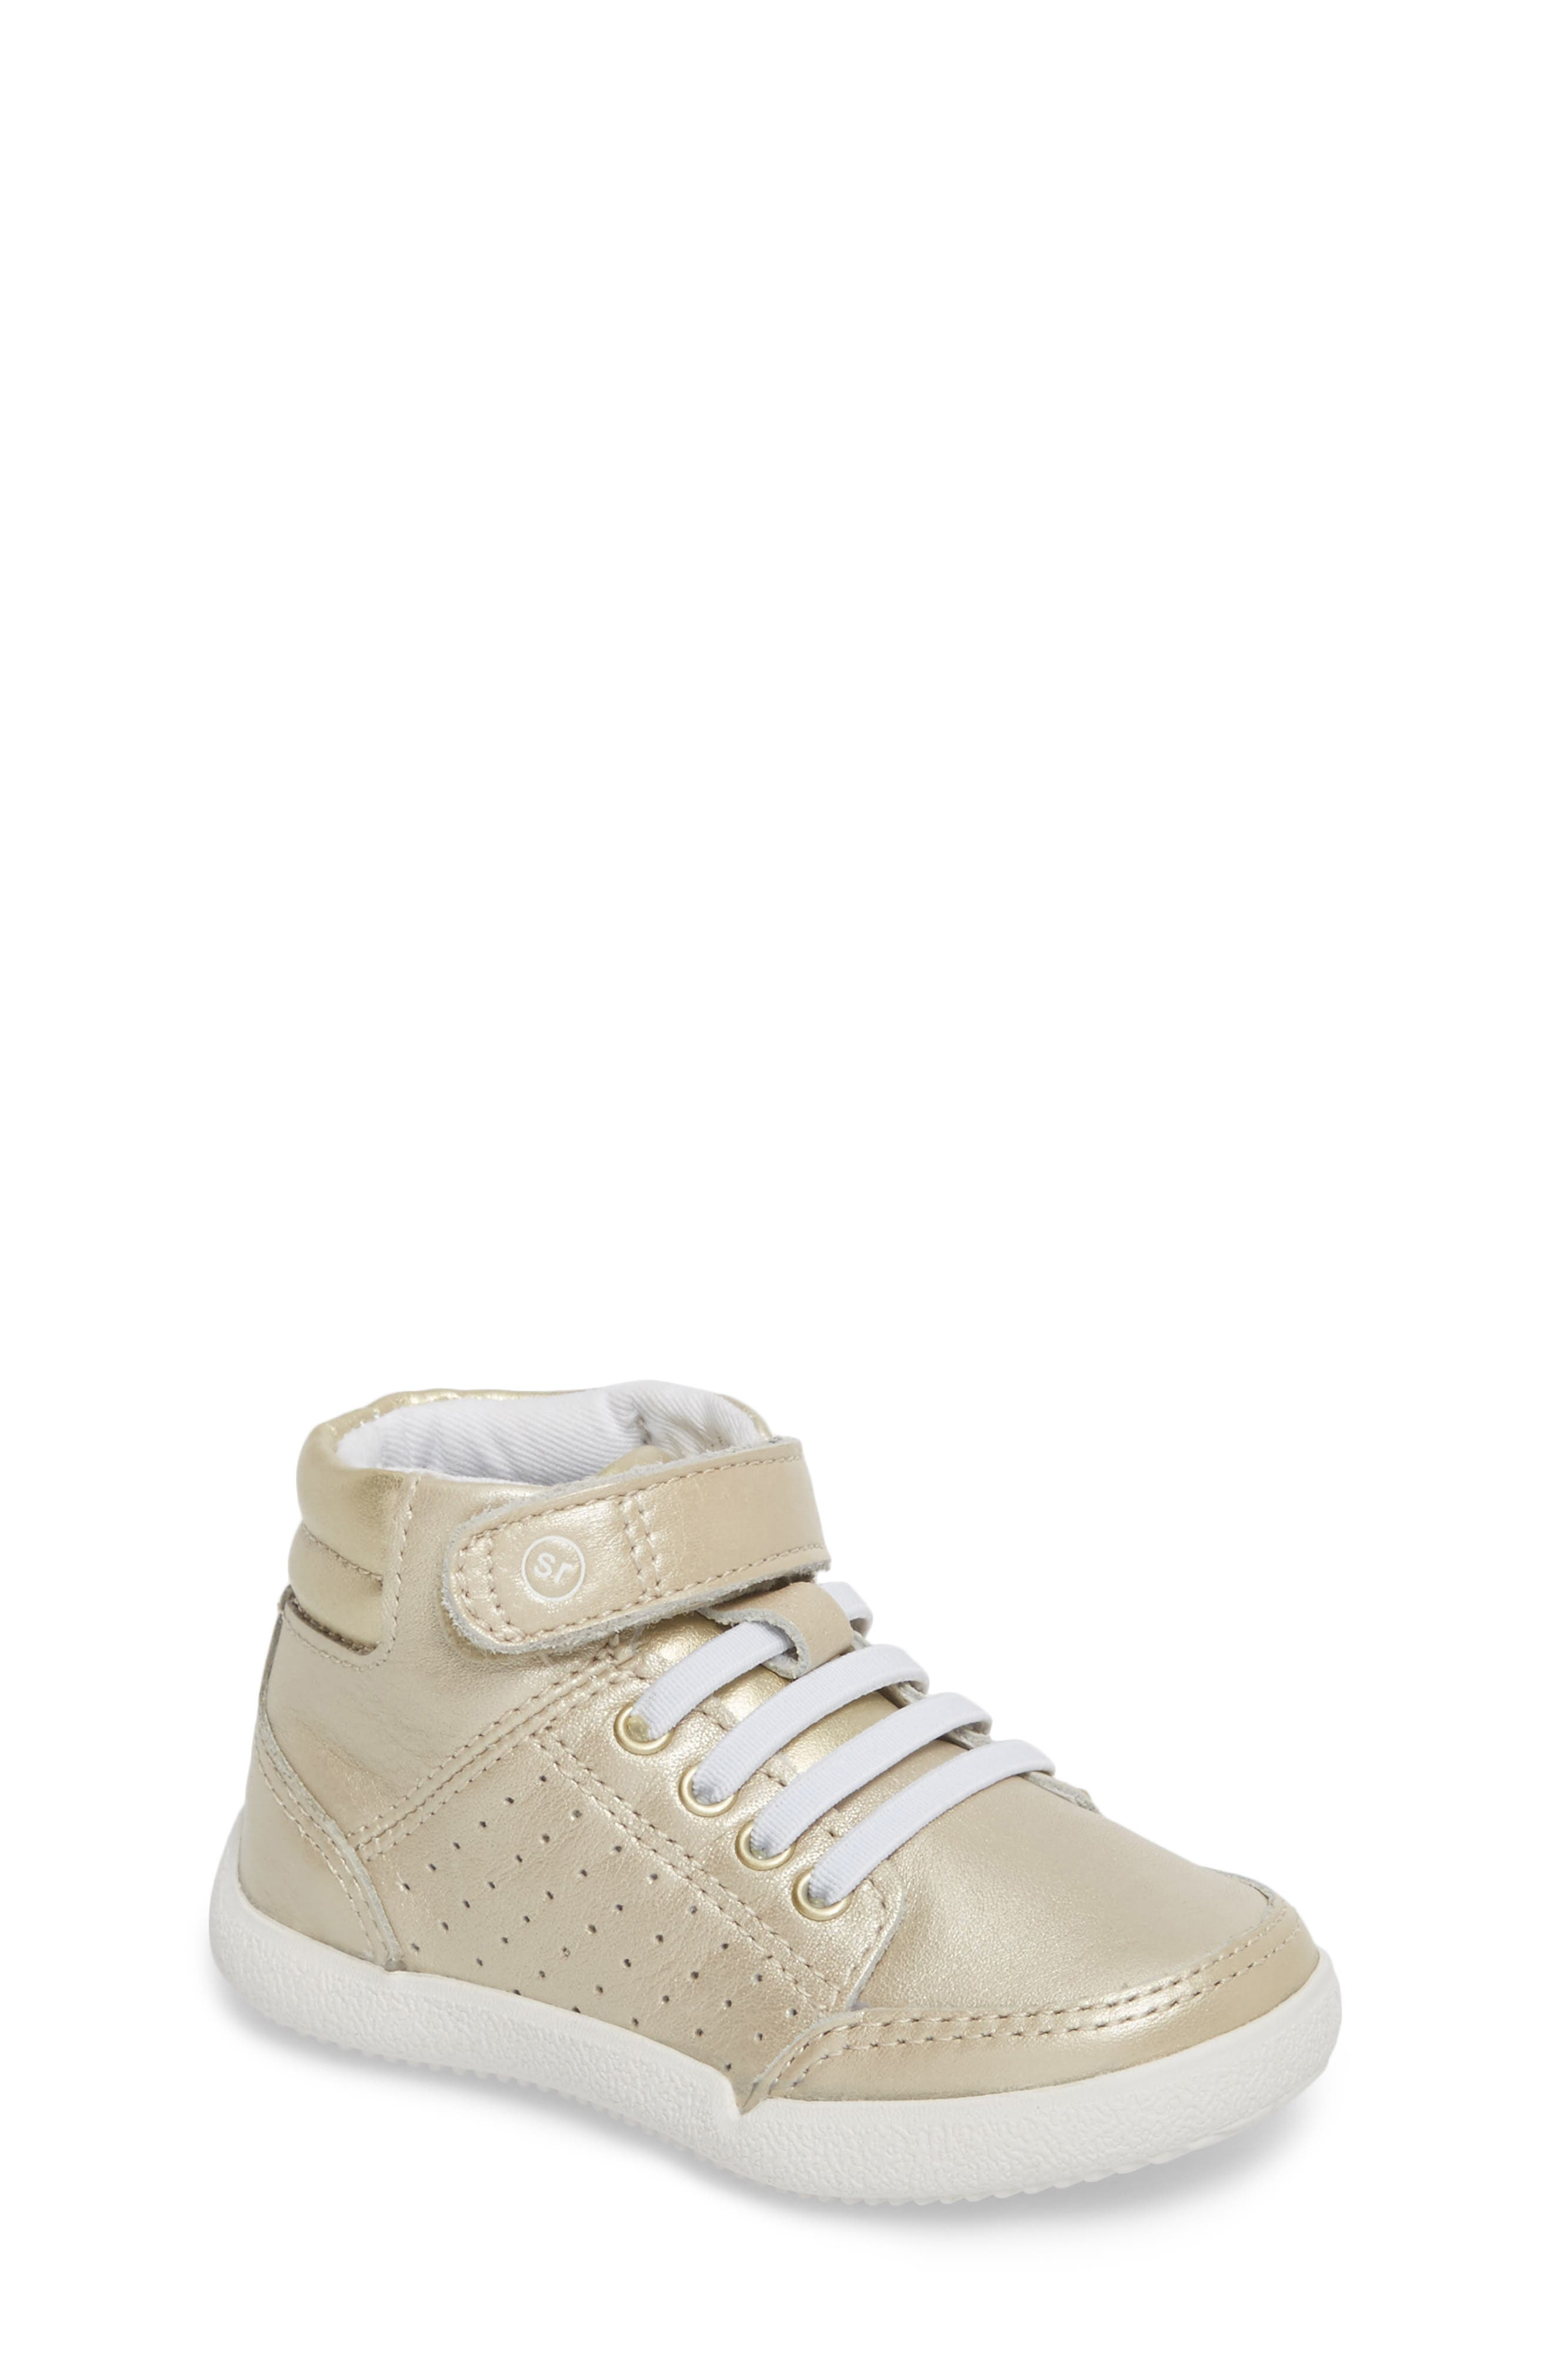 Stone High Top Sneaker,                         Main,                         color, Champagne Leather